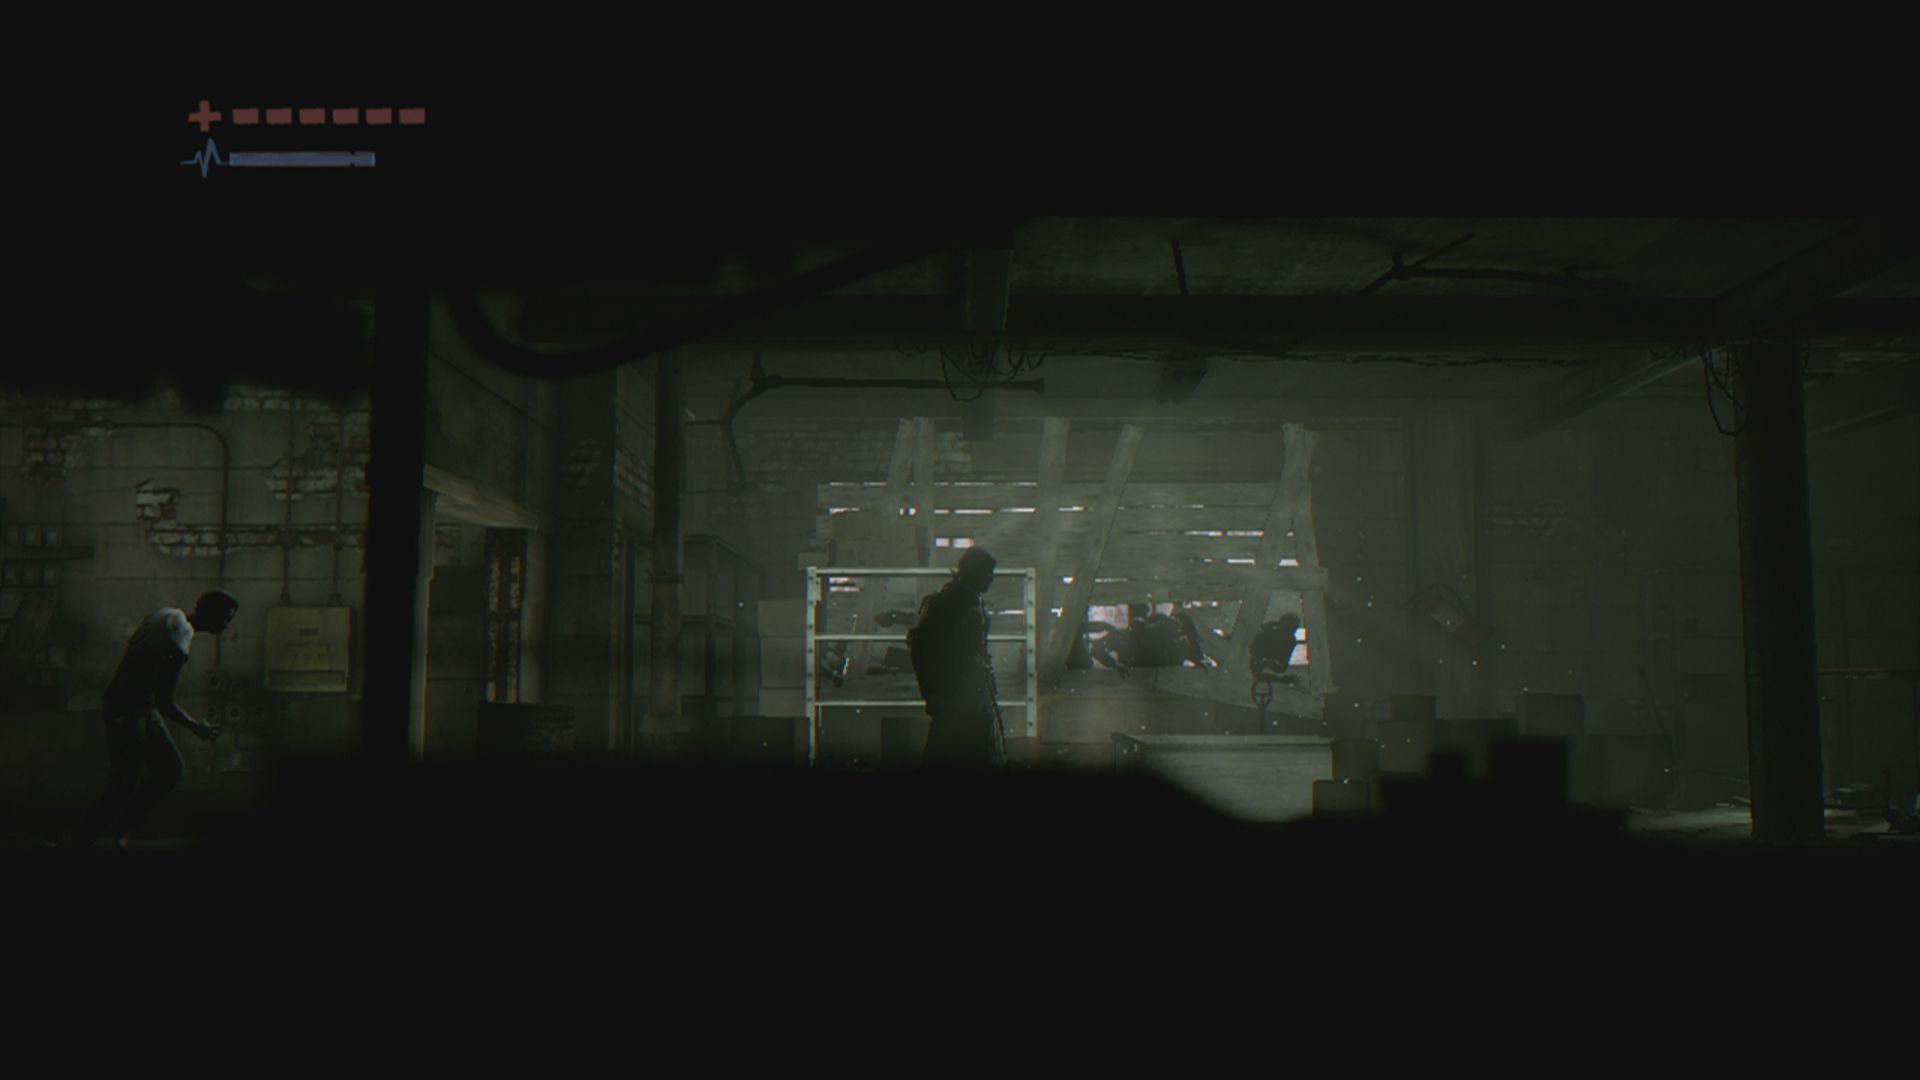 Deadlight Xbox 360 The size of the screen elements changes often to give a better view of the surroundings